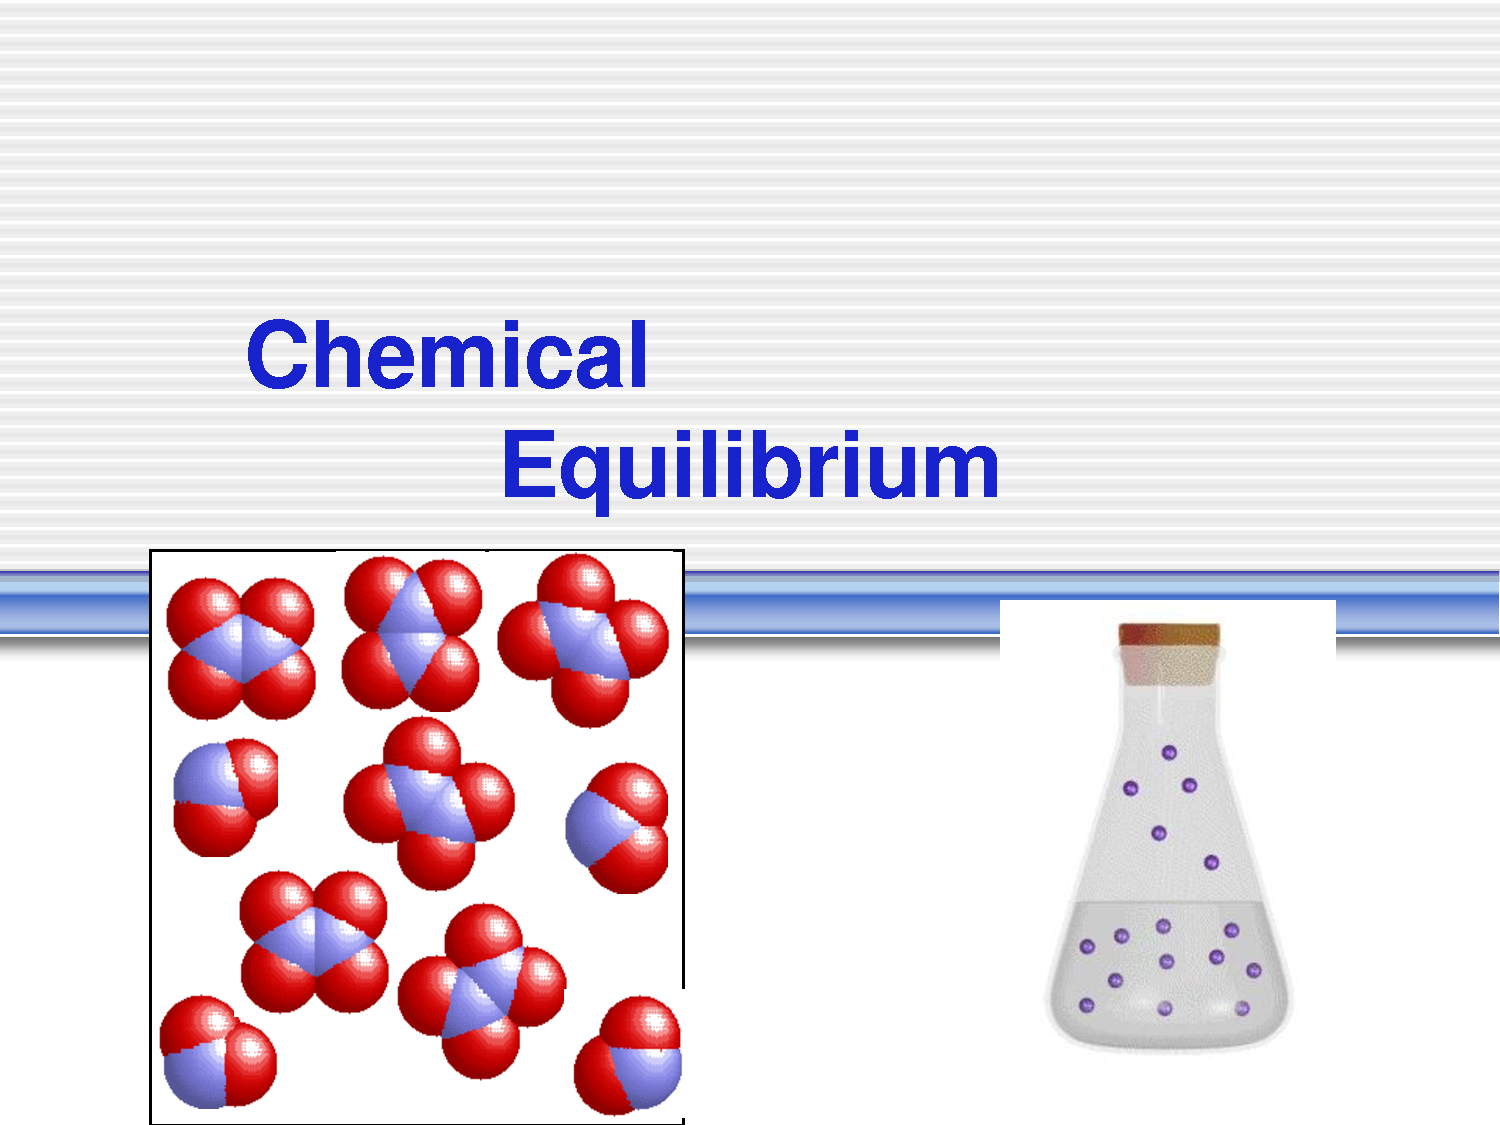 environmental chemistry equilibrium Higher level worksheets chapter 1 - quantative chemistry worksheet 11: quantative chemistry - glossary | [pdf |] worksheet 12: quantative chemistry - fast facts | .